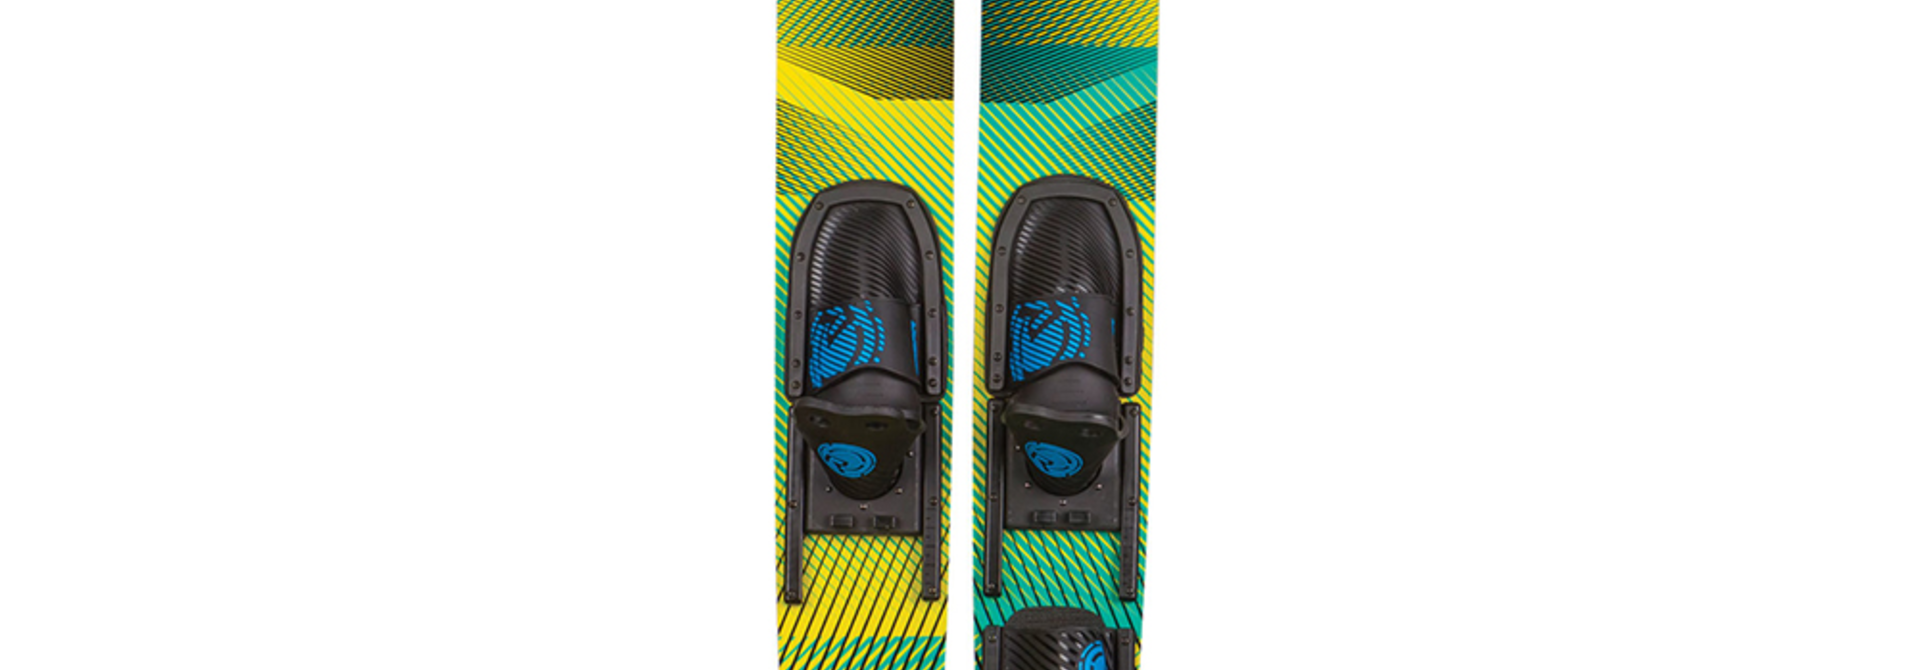 Origin Combos w/ Adj Horseshoe Bindings - 67